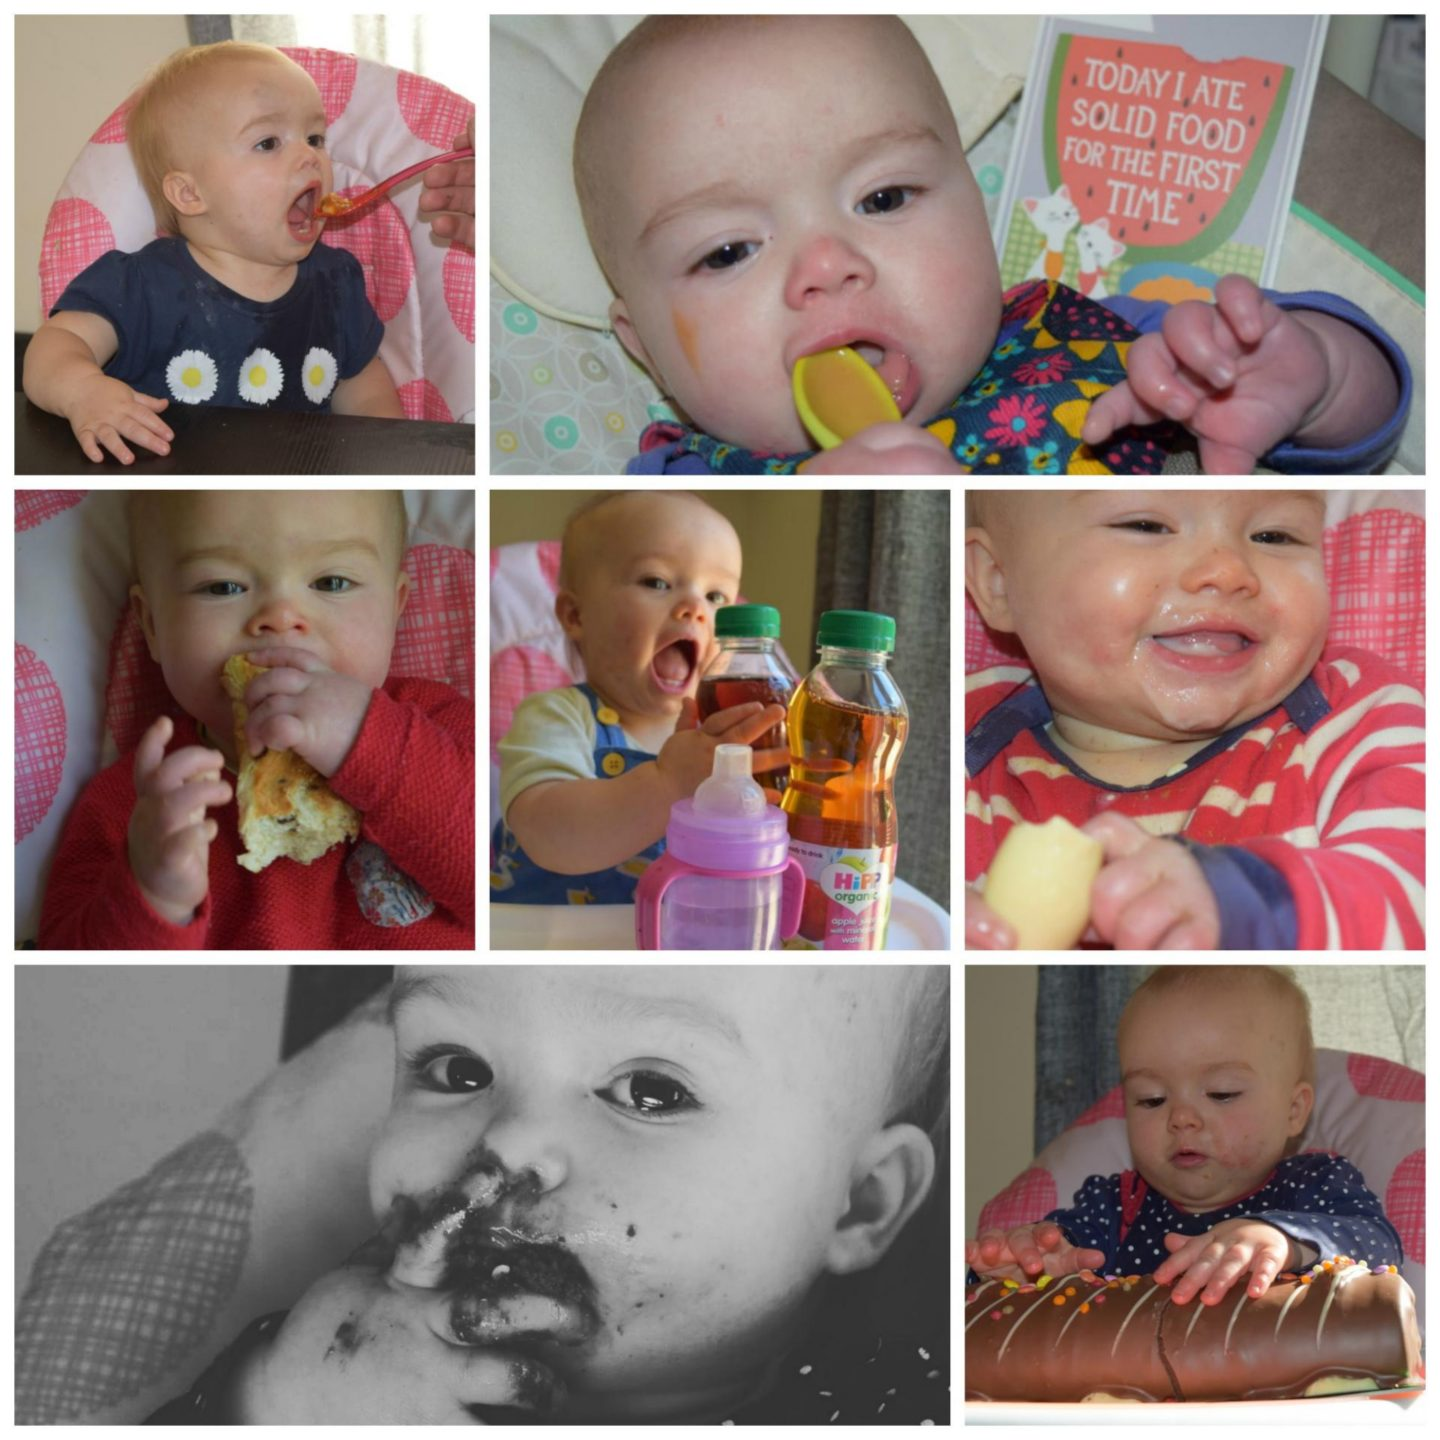 Weaning: 1 year on